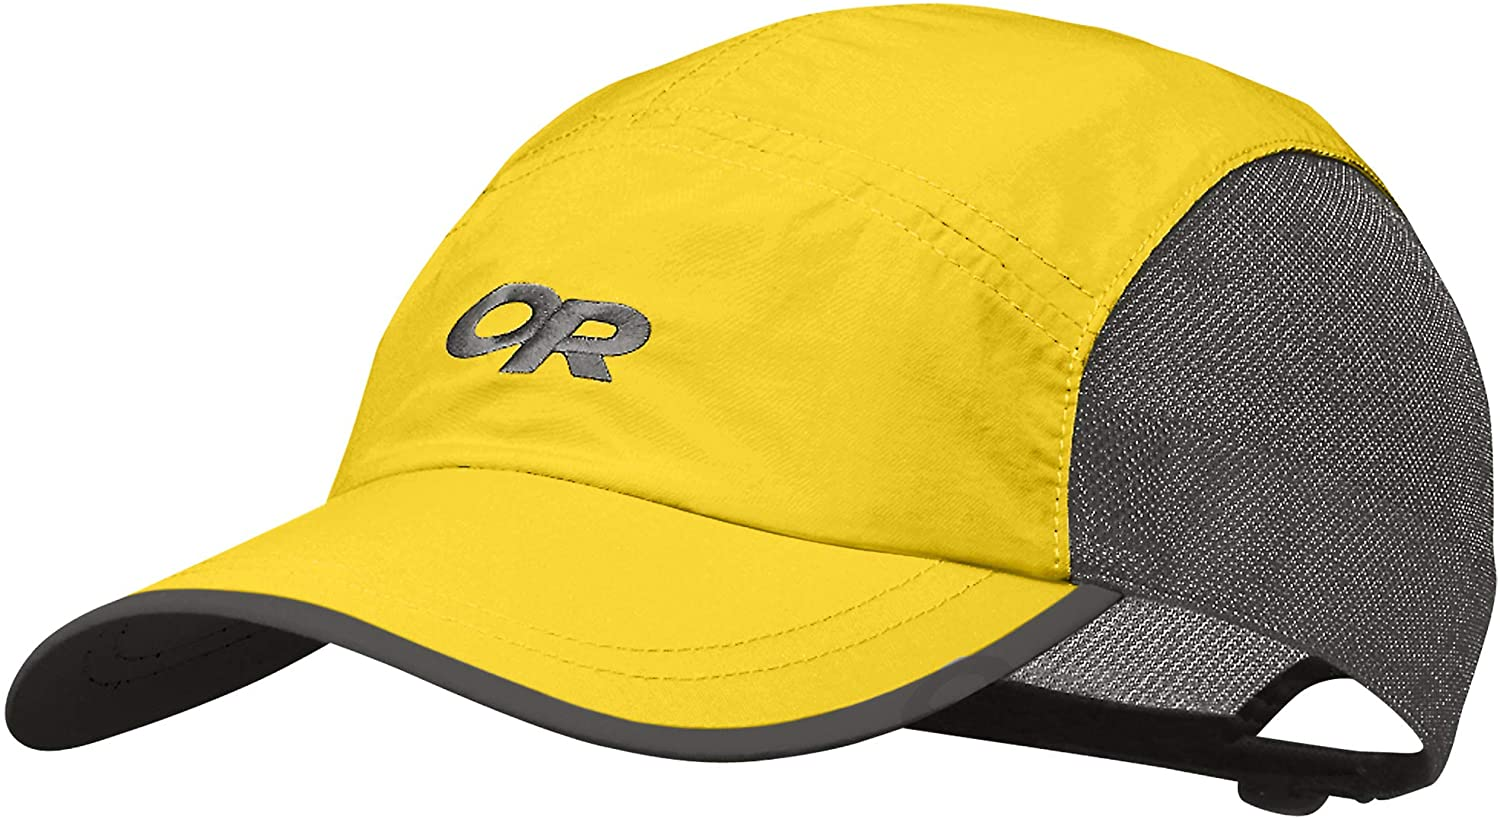 Outdoor Research Swift Cap Sulphur, One Size